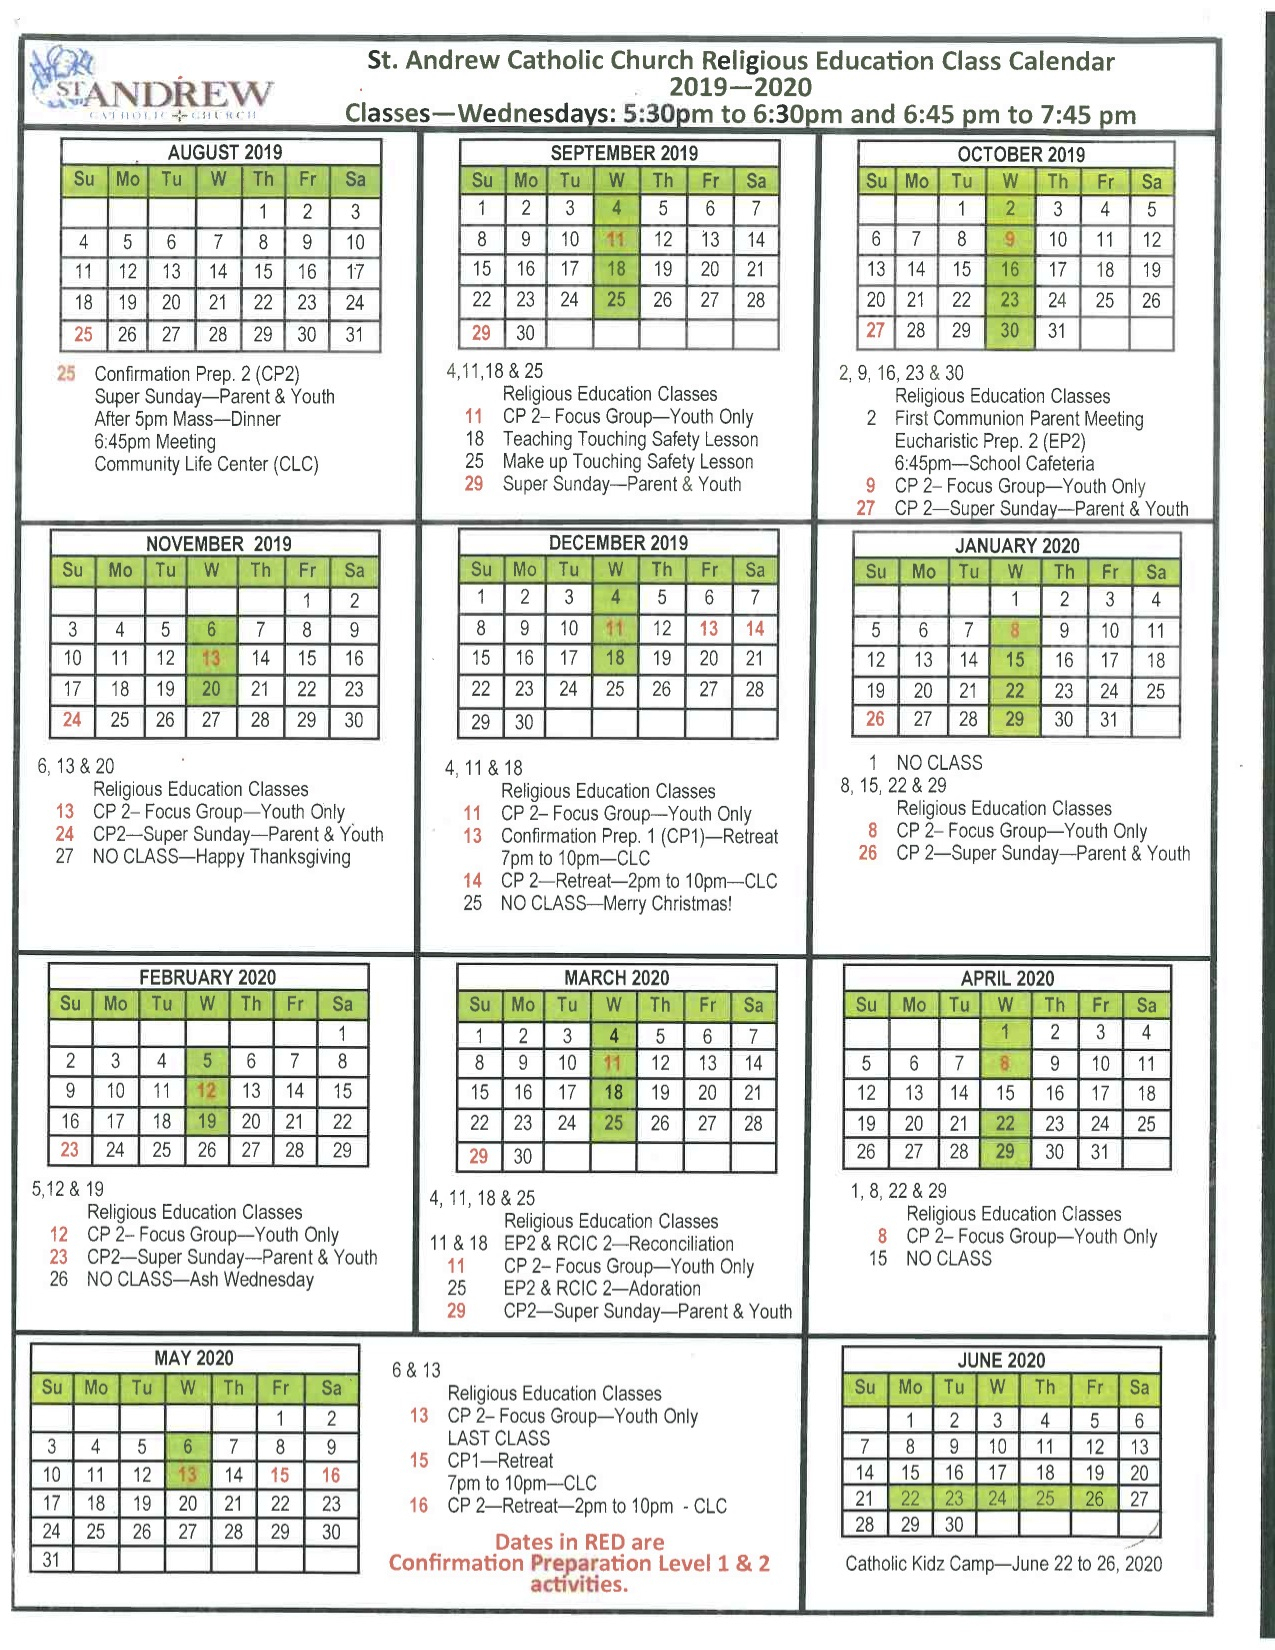 Liturgical Calendar  St. Andrew Catholic School with regard to Catholic Liturgy Calendar 2020